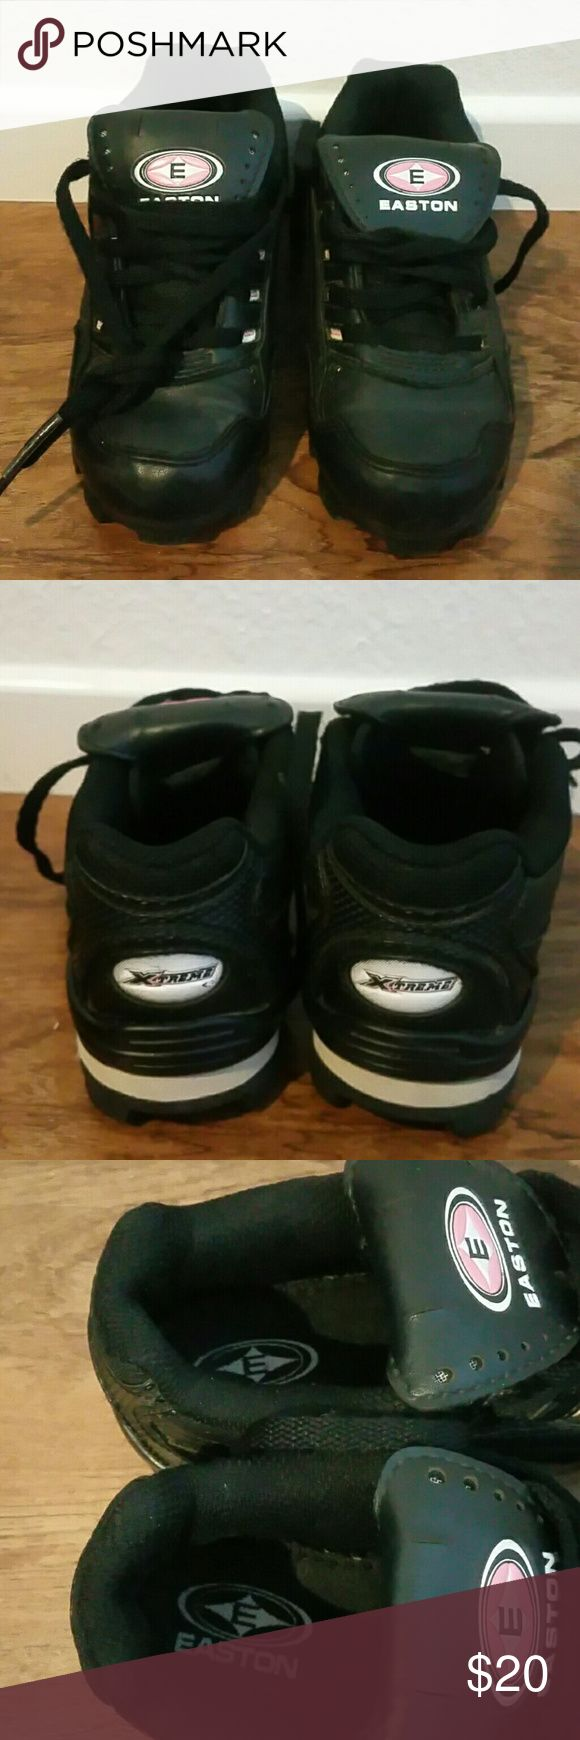 Toddler Girls cleats size 11 by Easton Girls cleats size 11 by Easton they are in great used condition. Please see photos for more details. I am open to all offers. Easton  Shoes